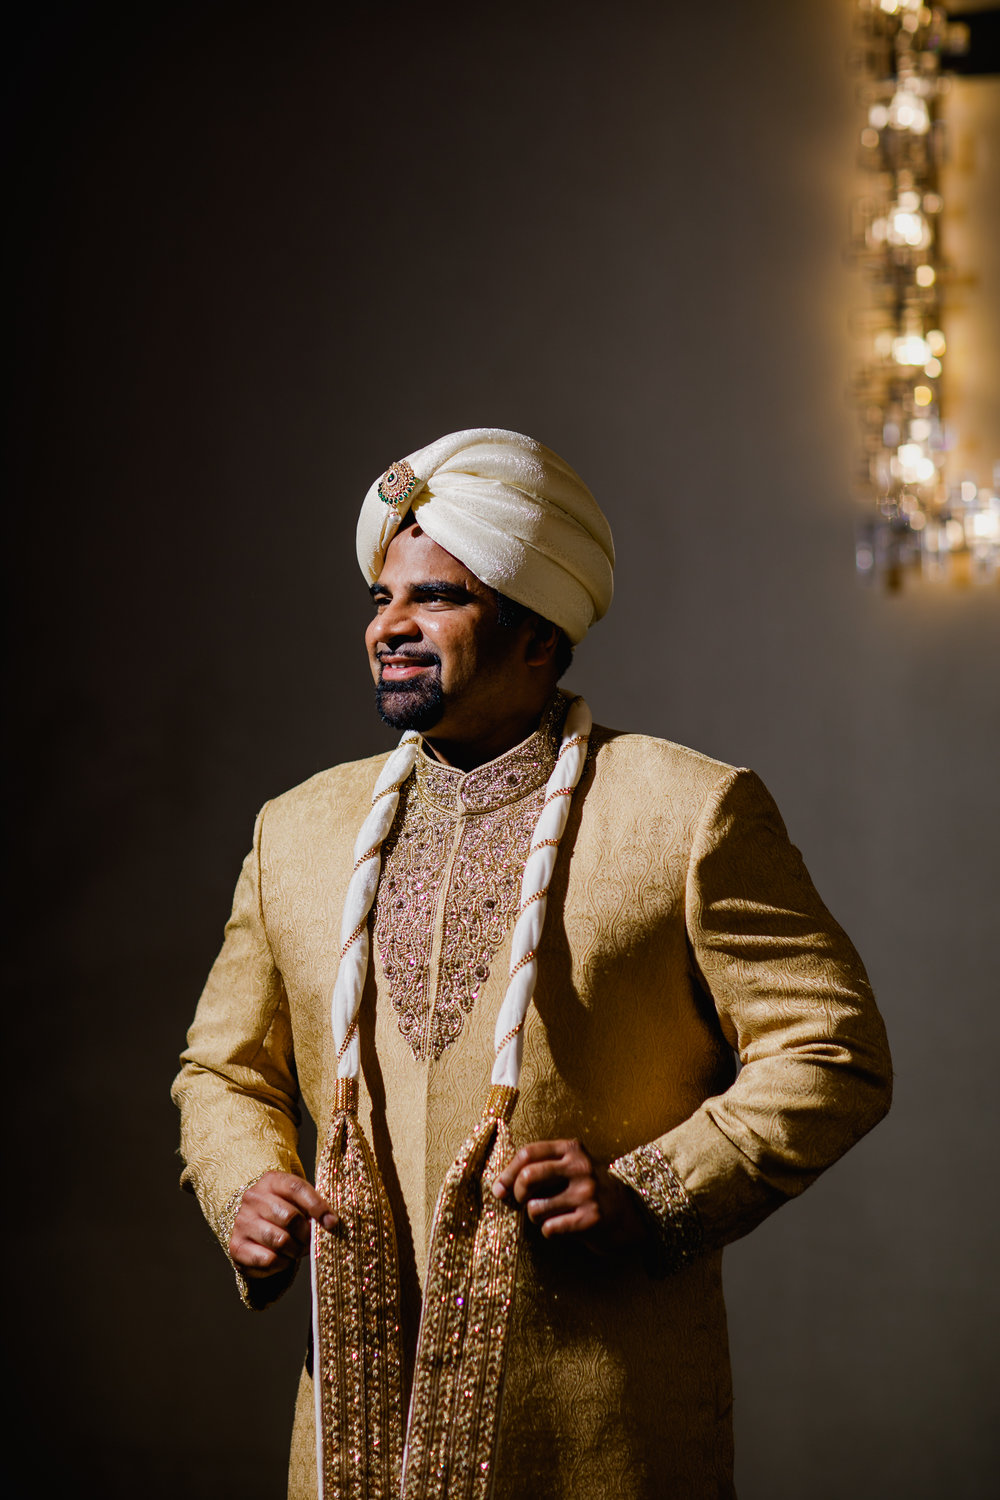 Indian wedding - Wedding photographer - Dallas Photographer - South Asian Wedding -  elizalde photography-5.jpg